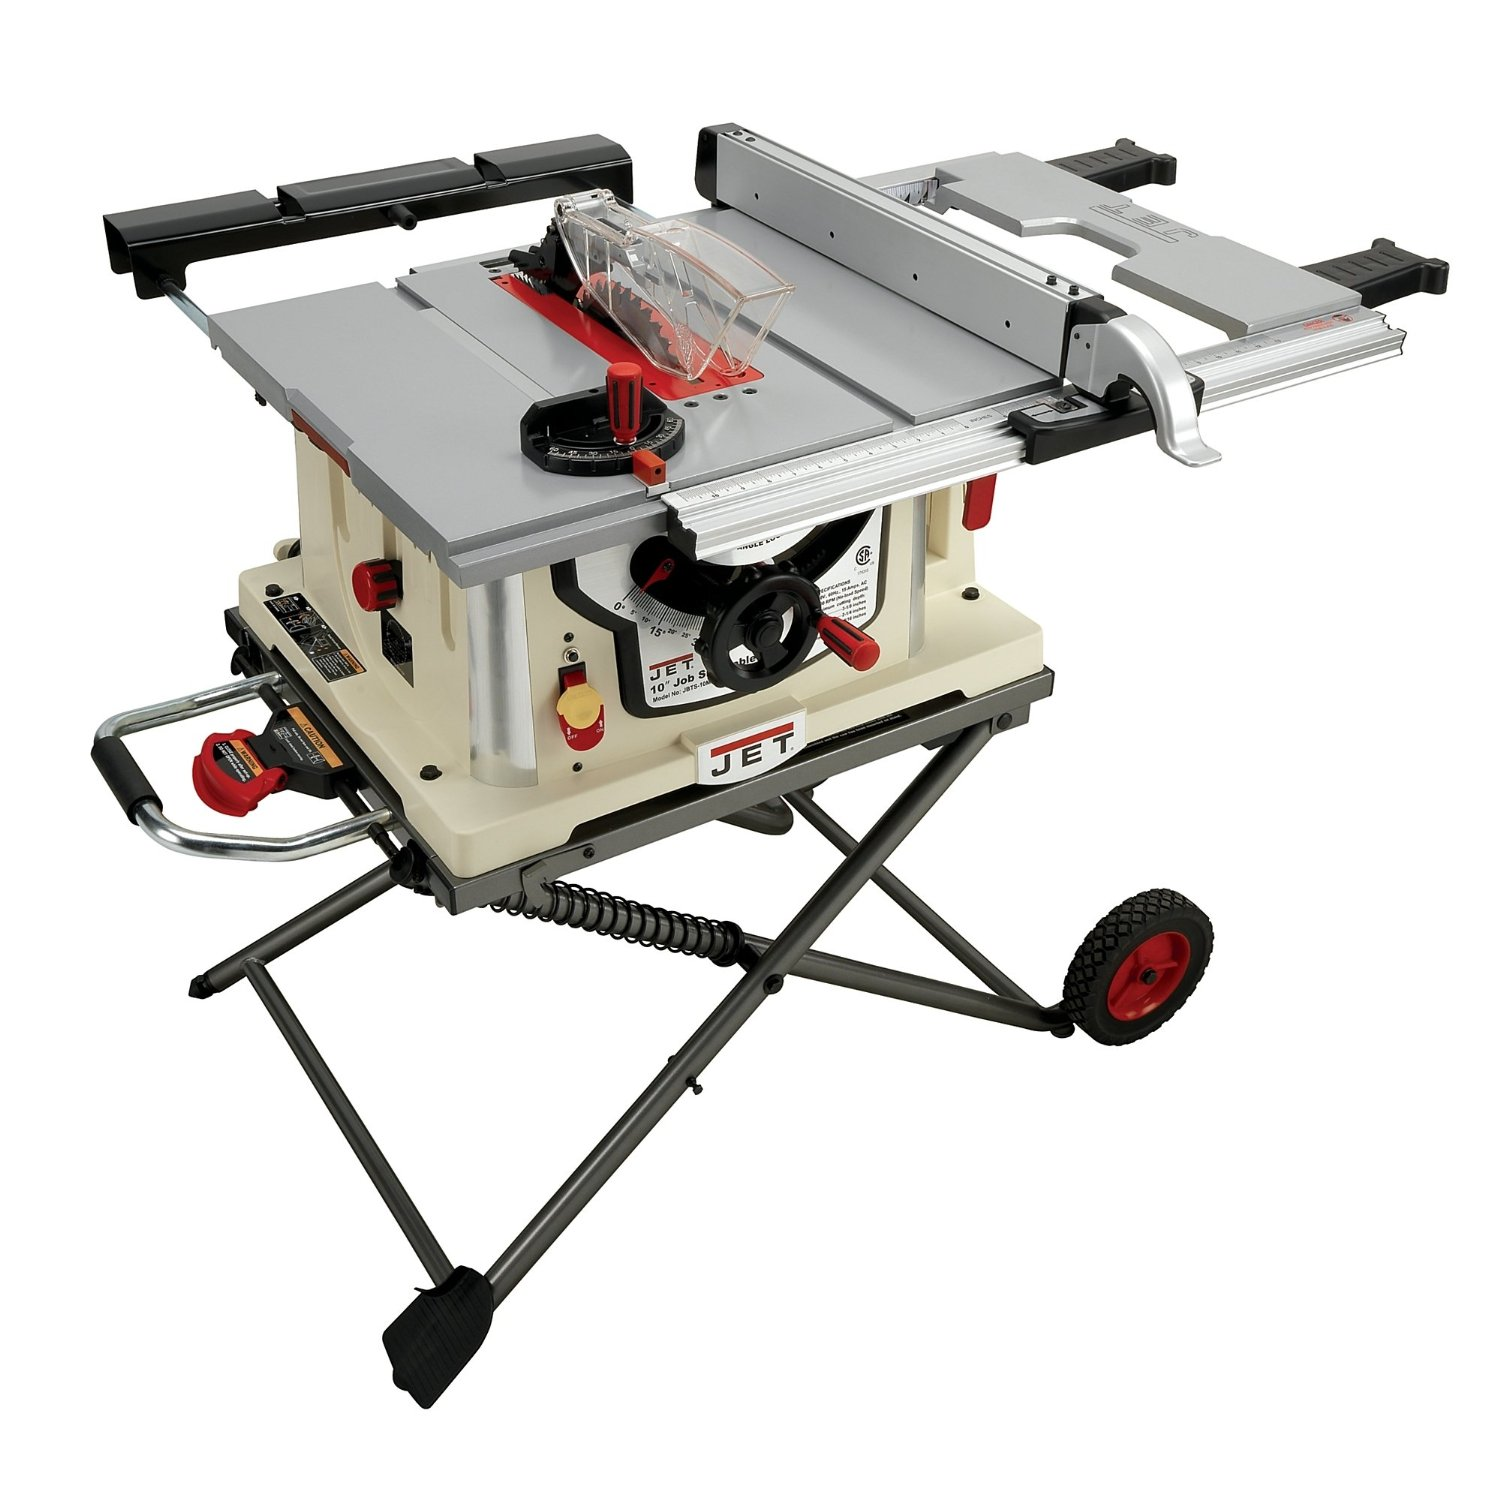 Jet jbts 10mjs review table saw central for 10 dado blade for table saw